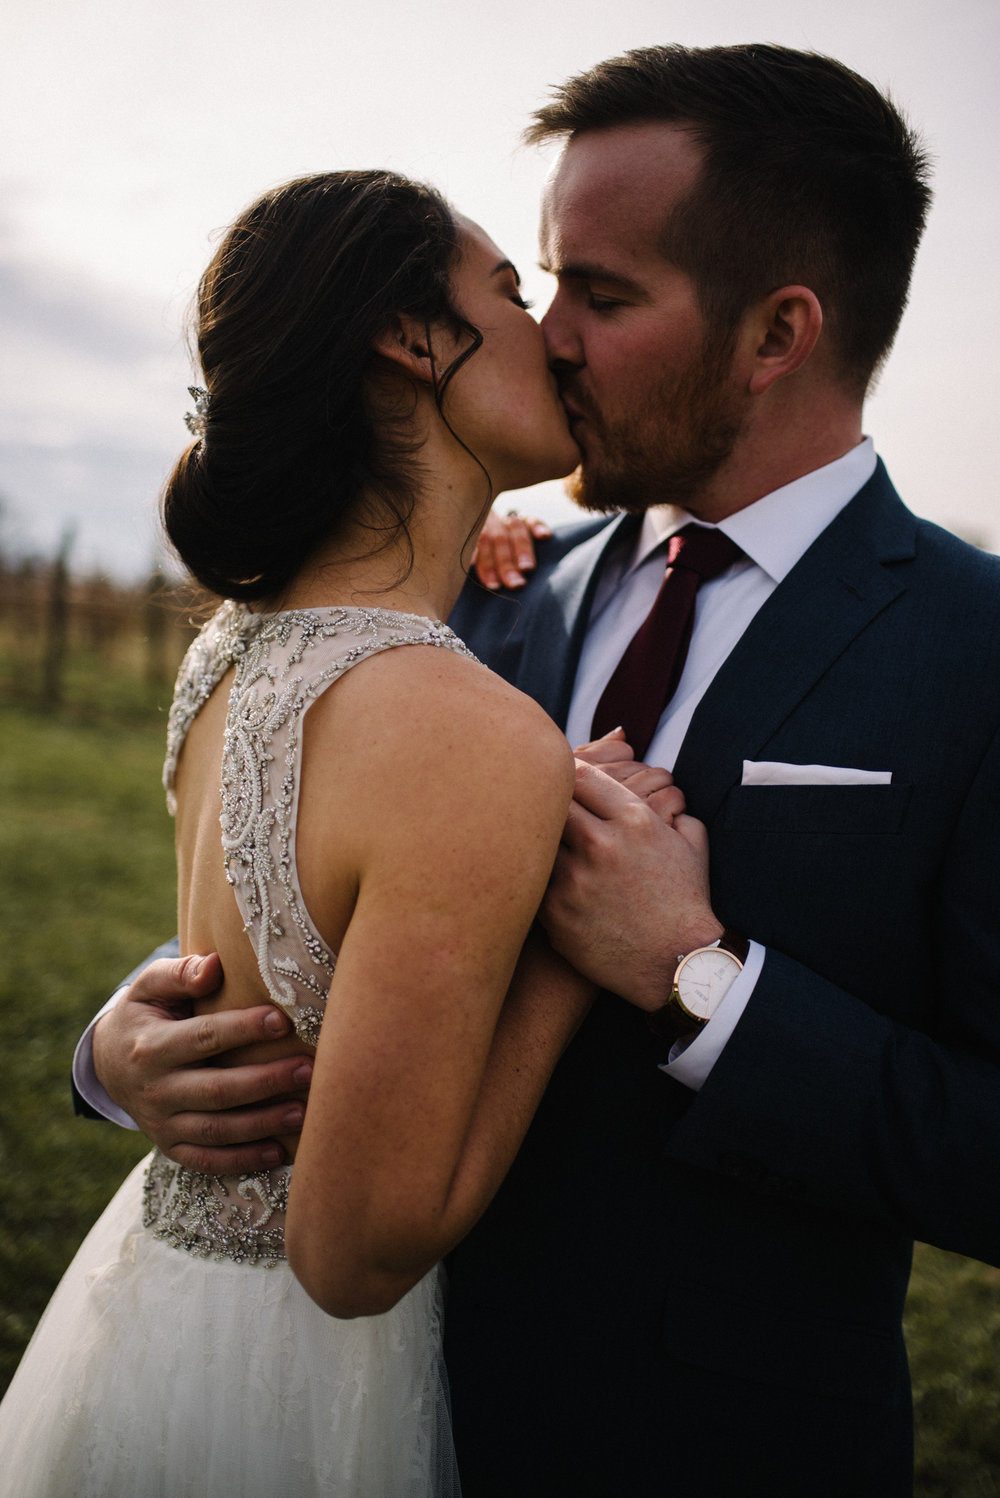 Alyssa and Jesse Winter Vineyard Wedding Luray Virginia Shenandoah Valley Faithbrooke_30.JPG